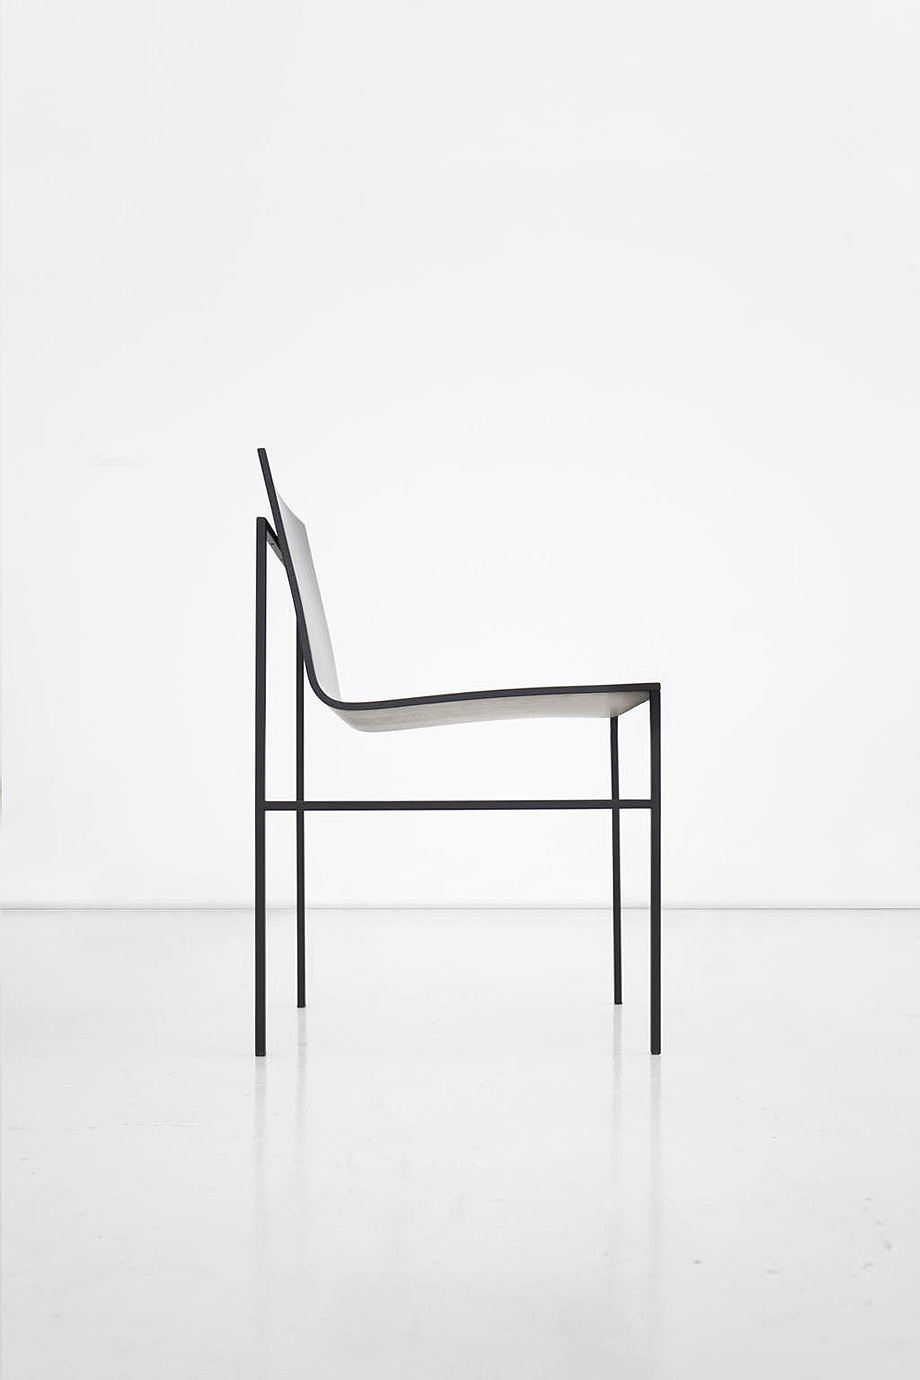 silla a-collection de fran silvestre y capdell (3)